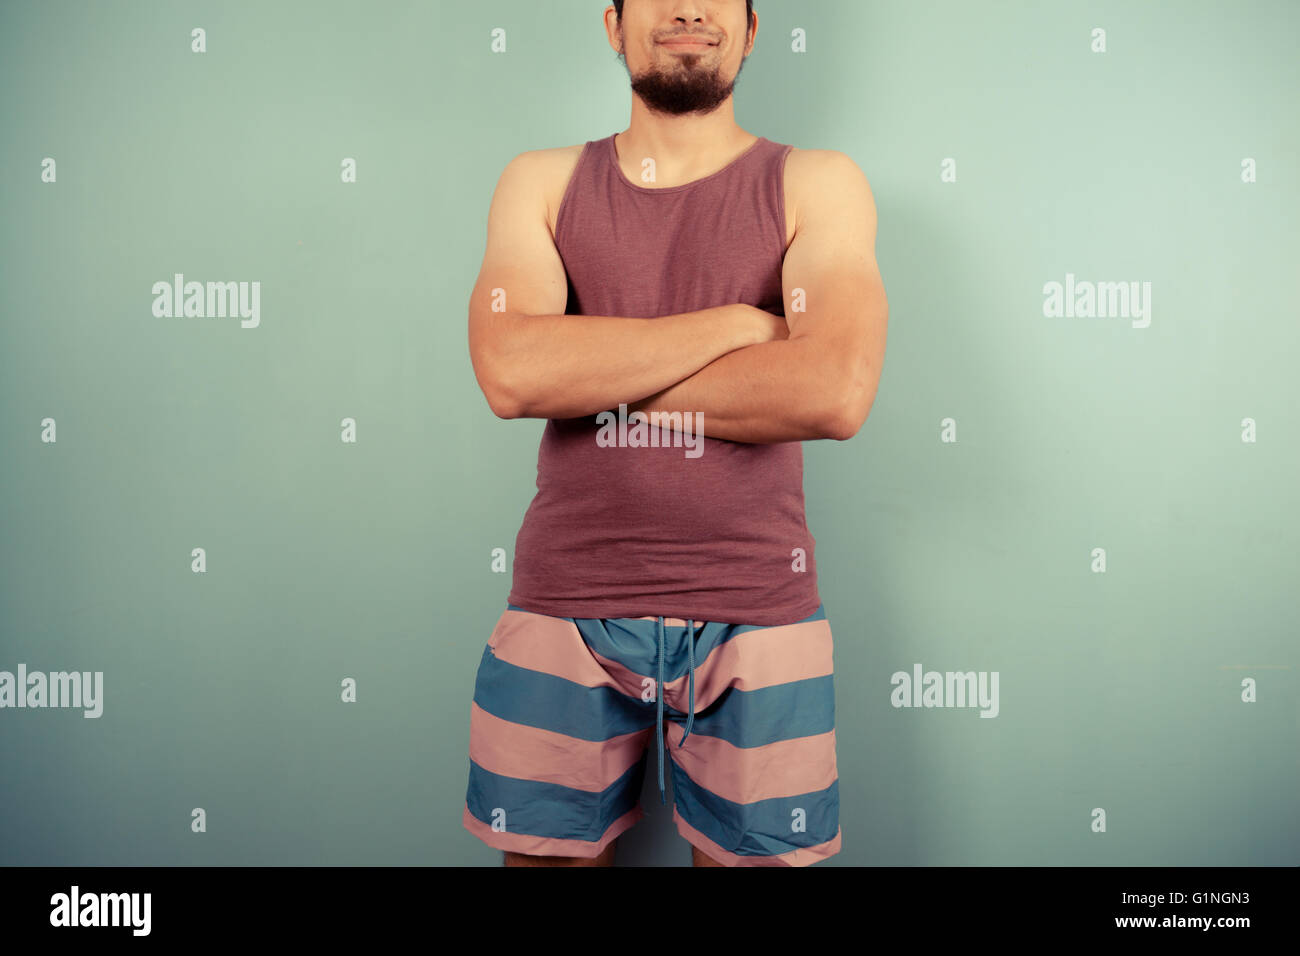 A young man wearing striped shorts and a vest is standing with his arms crossed - Stock Image